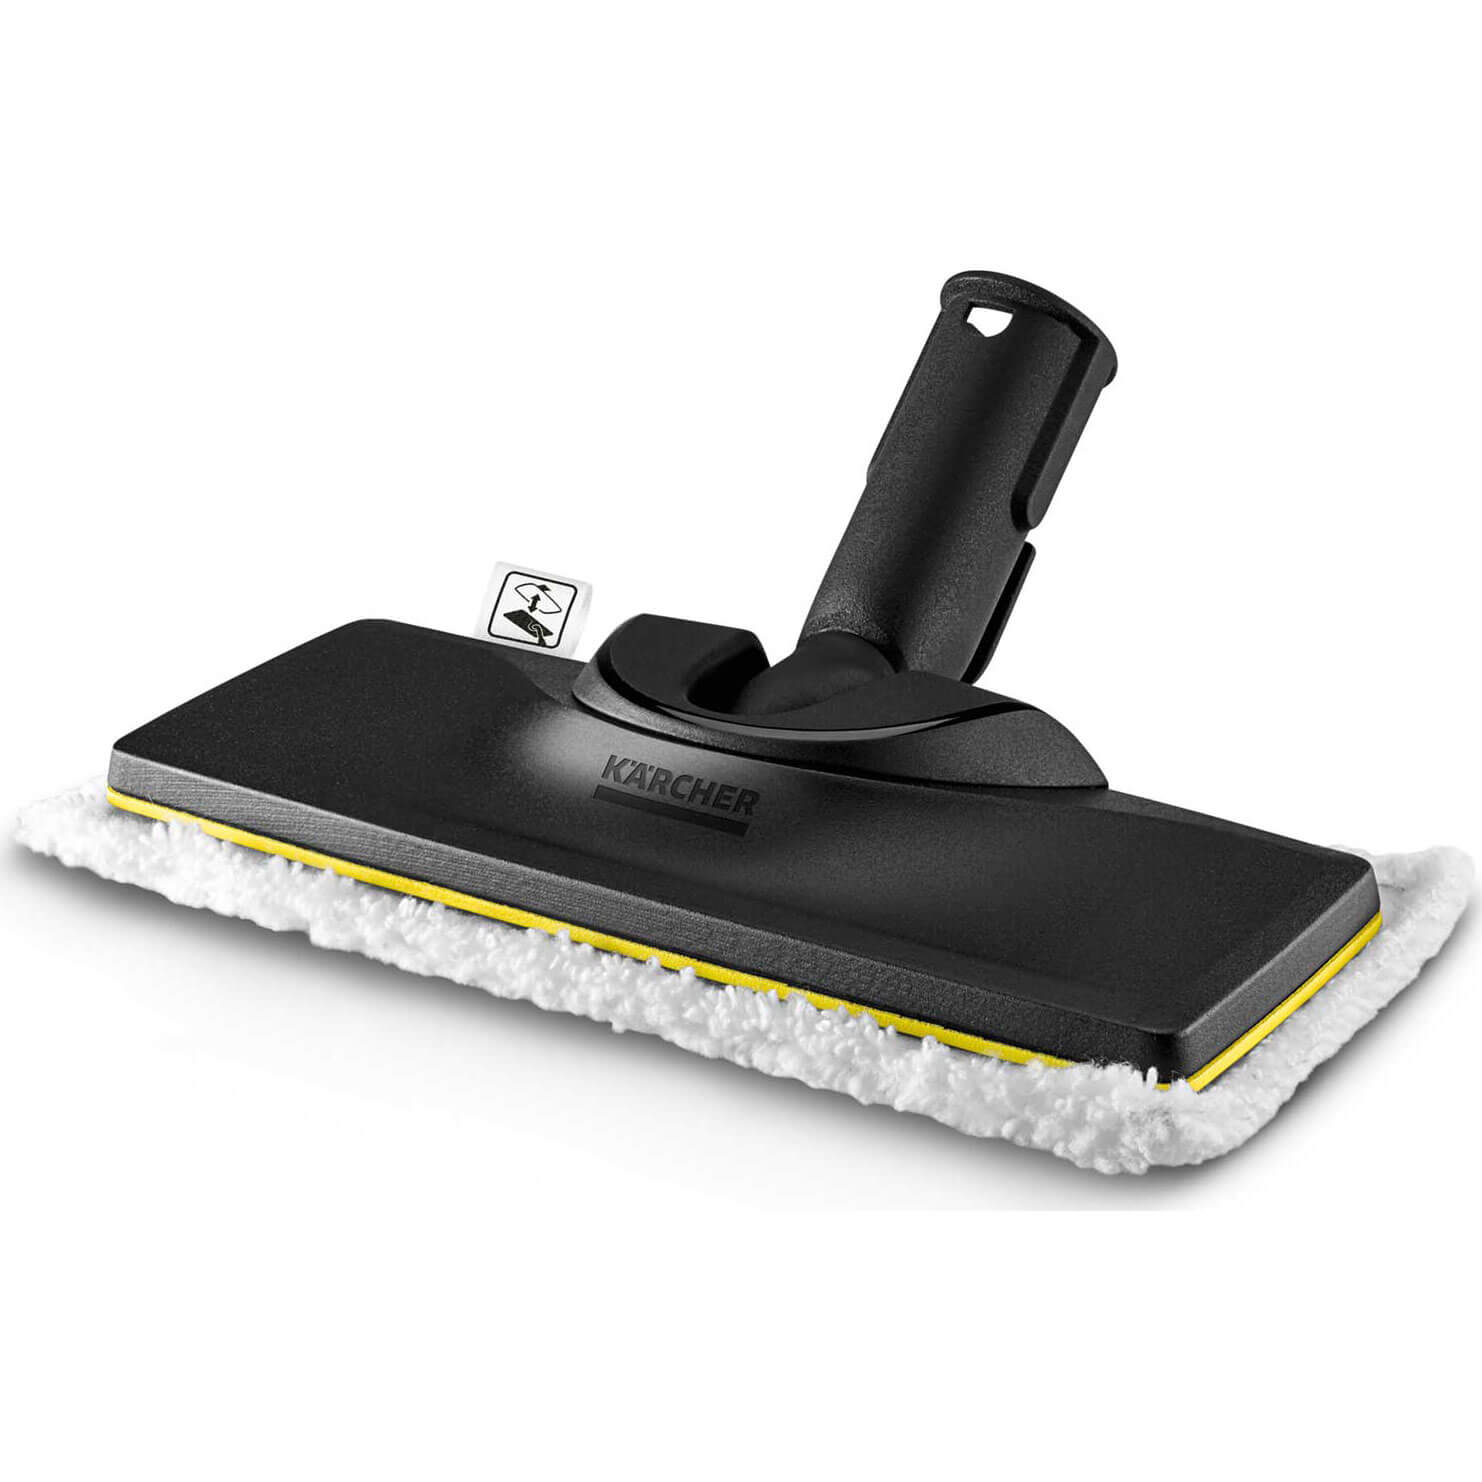 Karcher EASYFIX Small Floor Tool and Cloth for SC Steam Cleaners